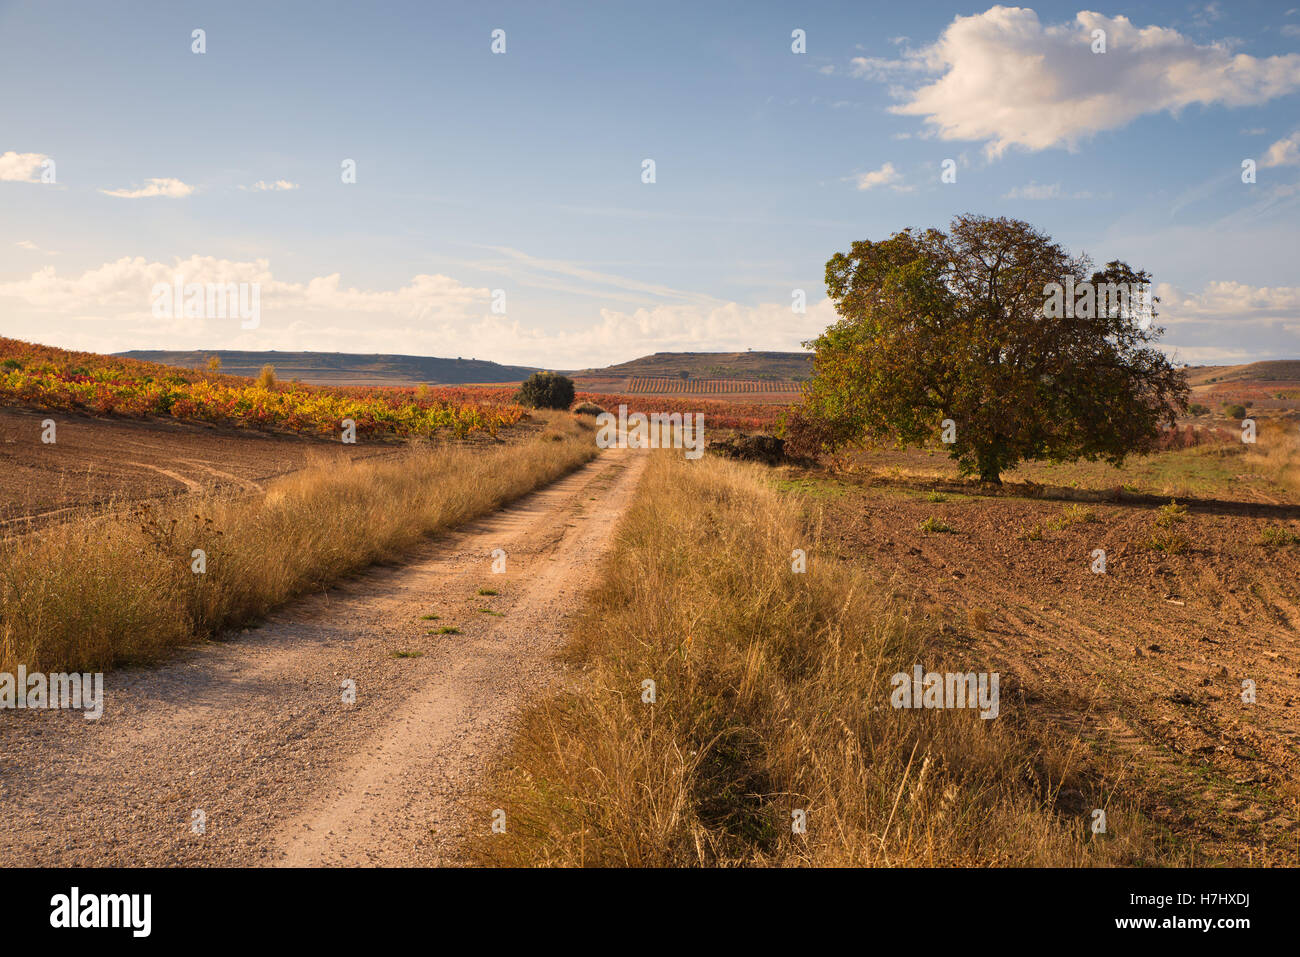 Autumnal landscape with elm, path and vineyard in the background - Stock Image